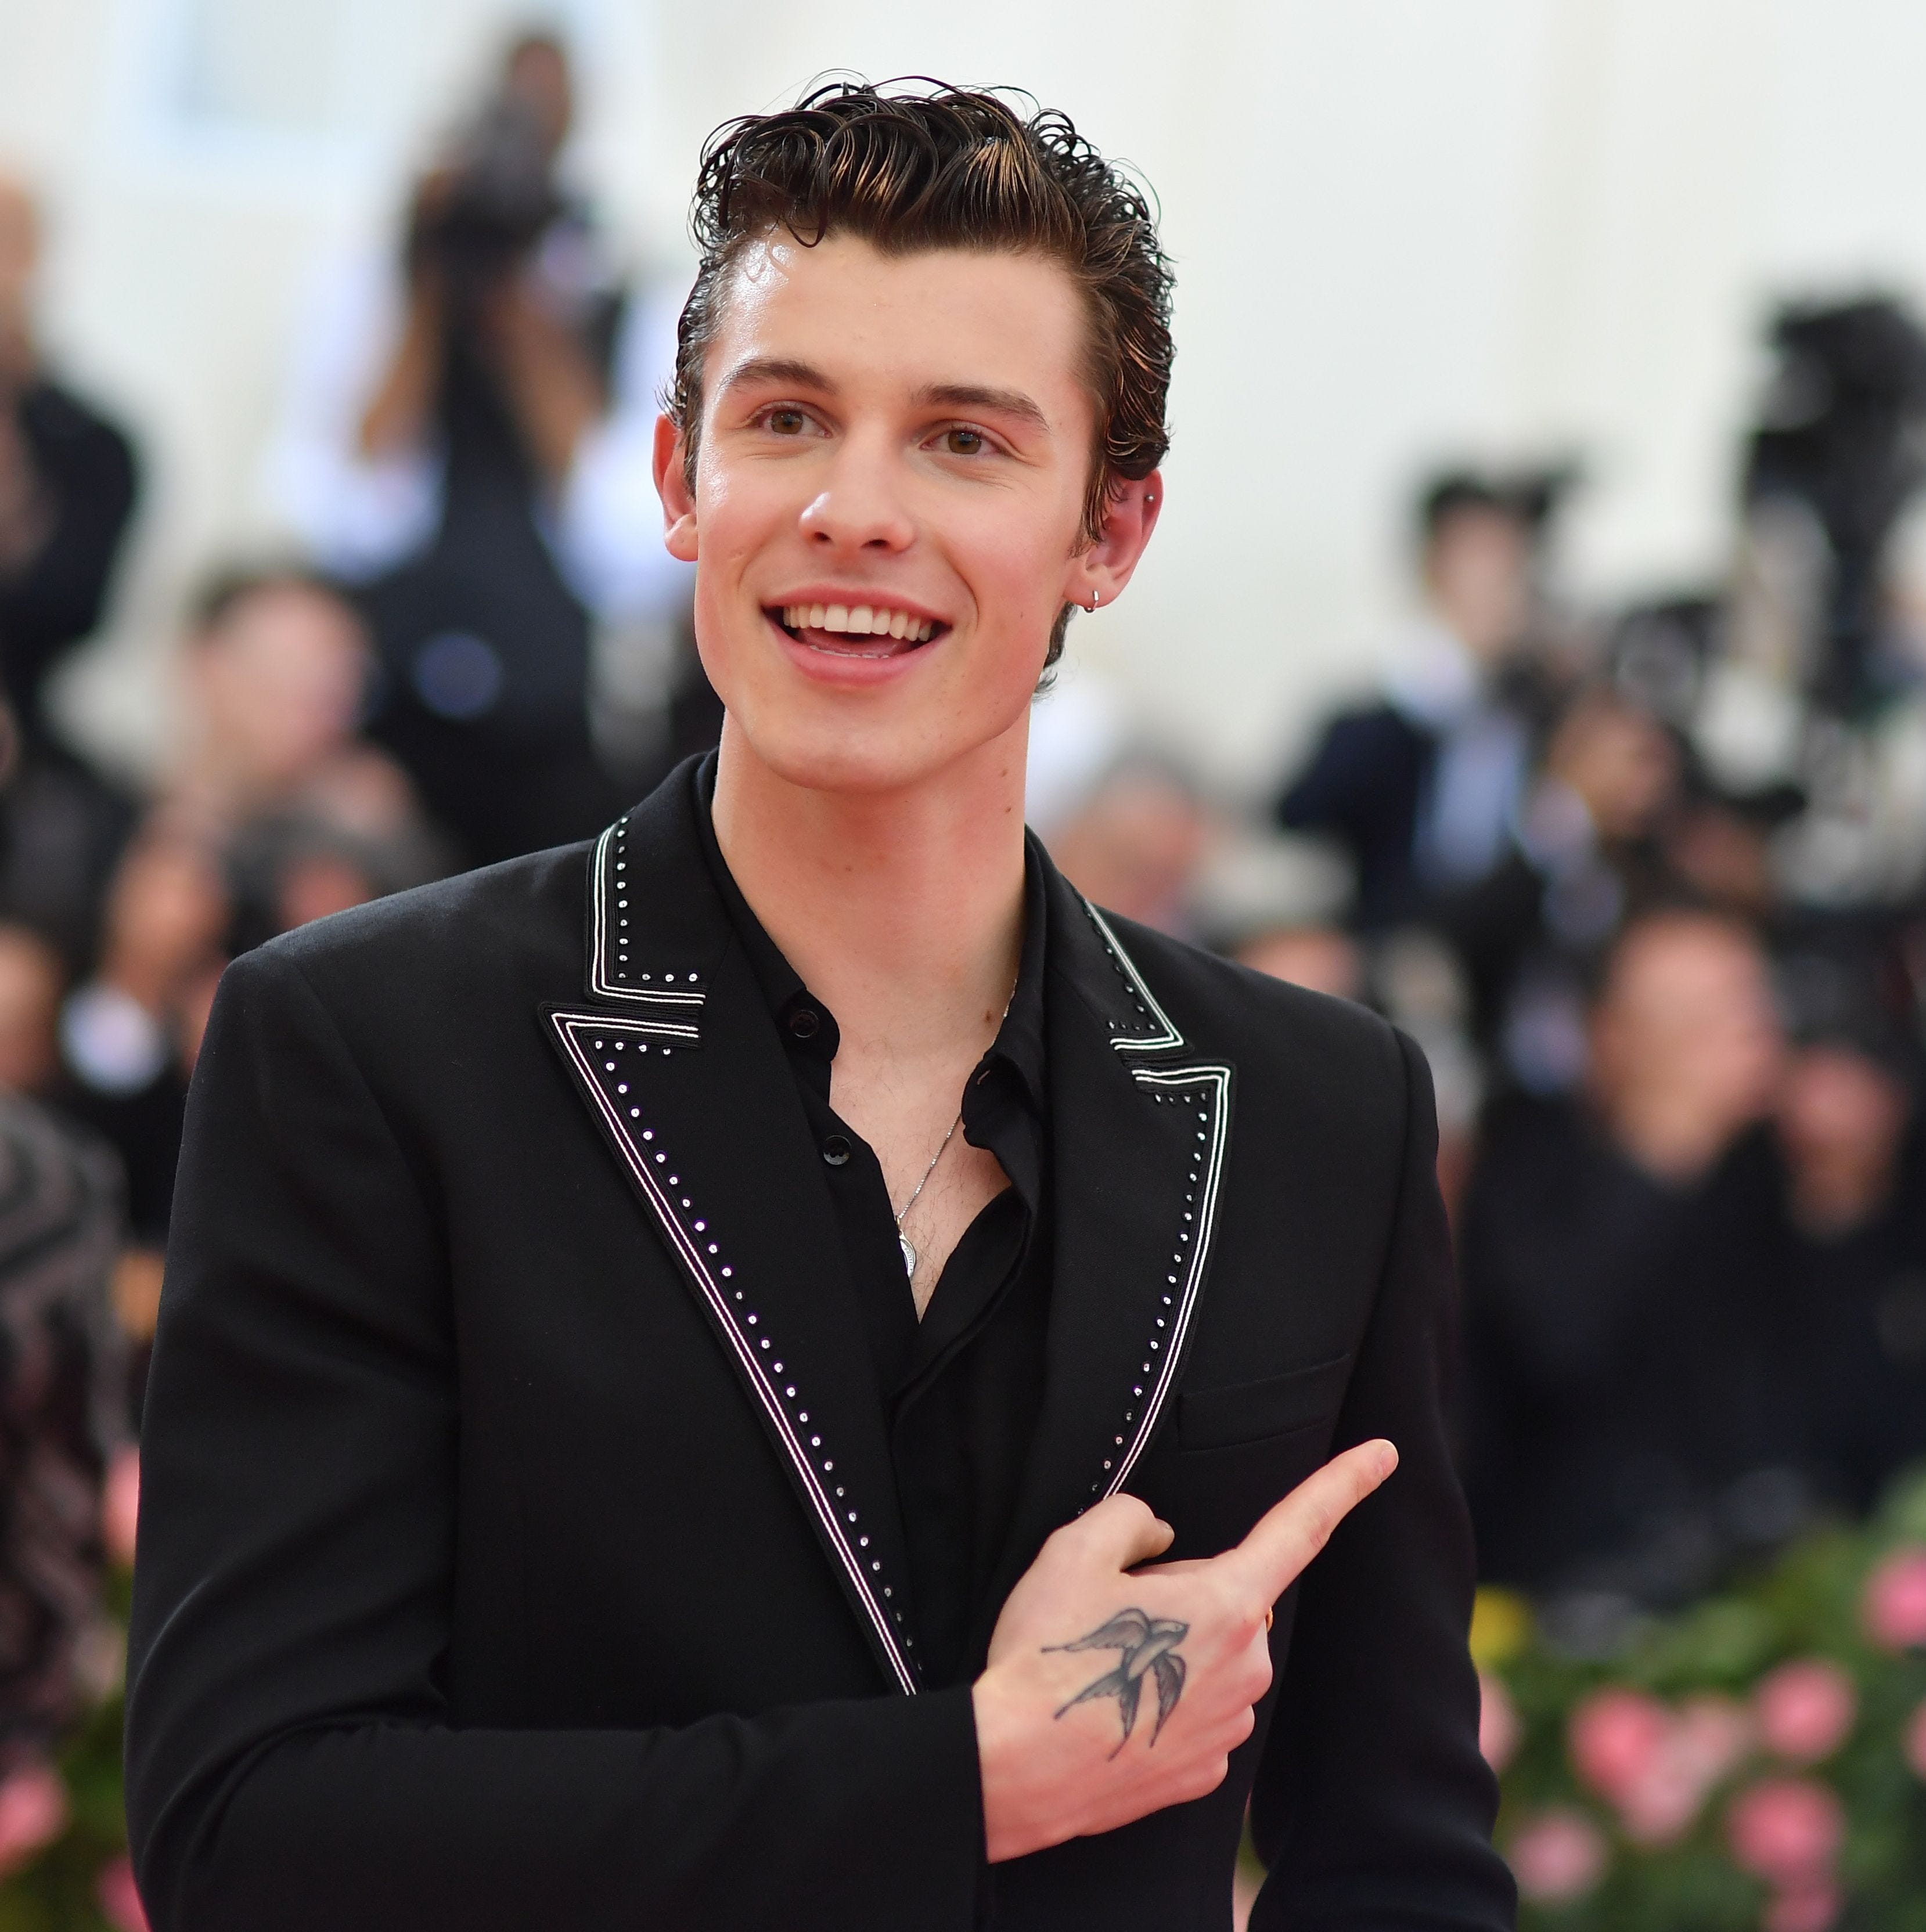 Shawn Mendes arrives for the 2019 Met Gala on May 6, 2019, in New York.